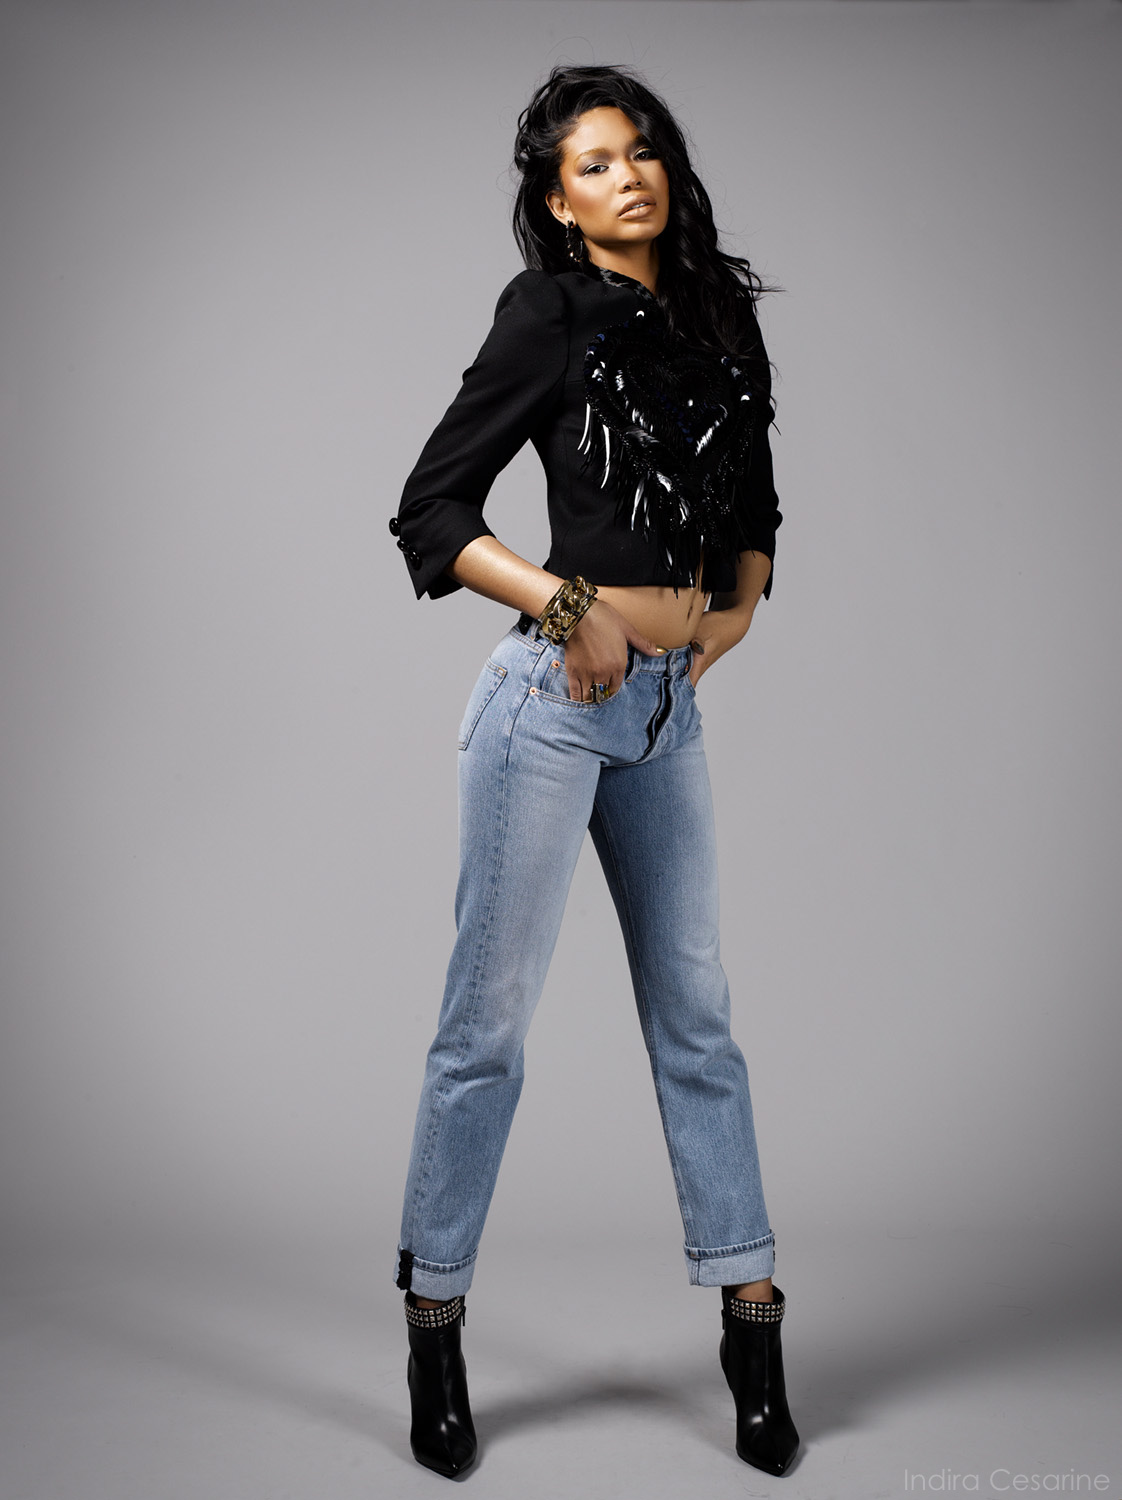 Chanel-Iman-Photography-by-Indira-Cesarine-010.jpg